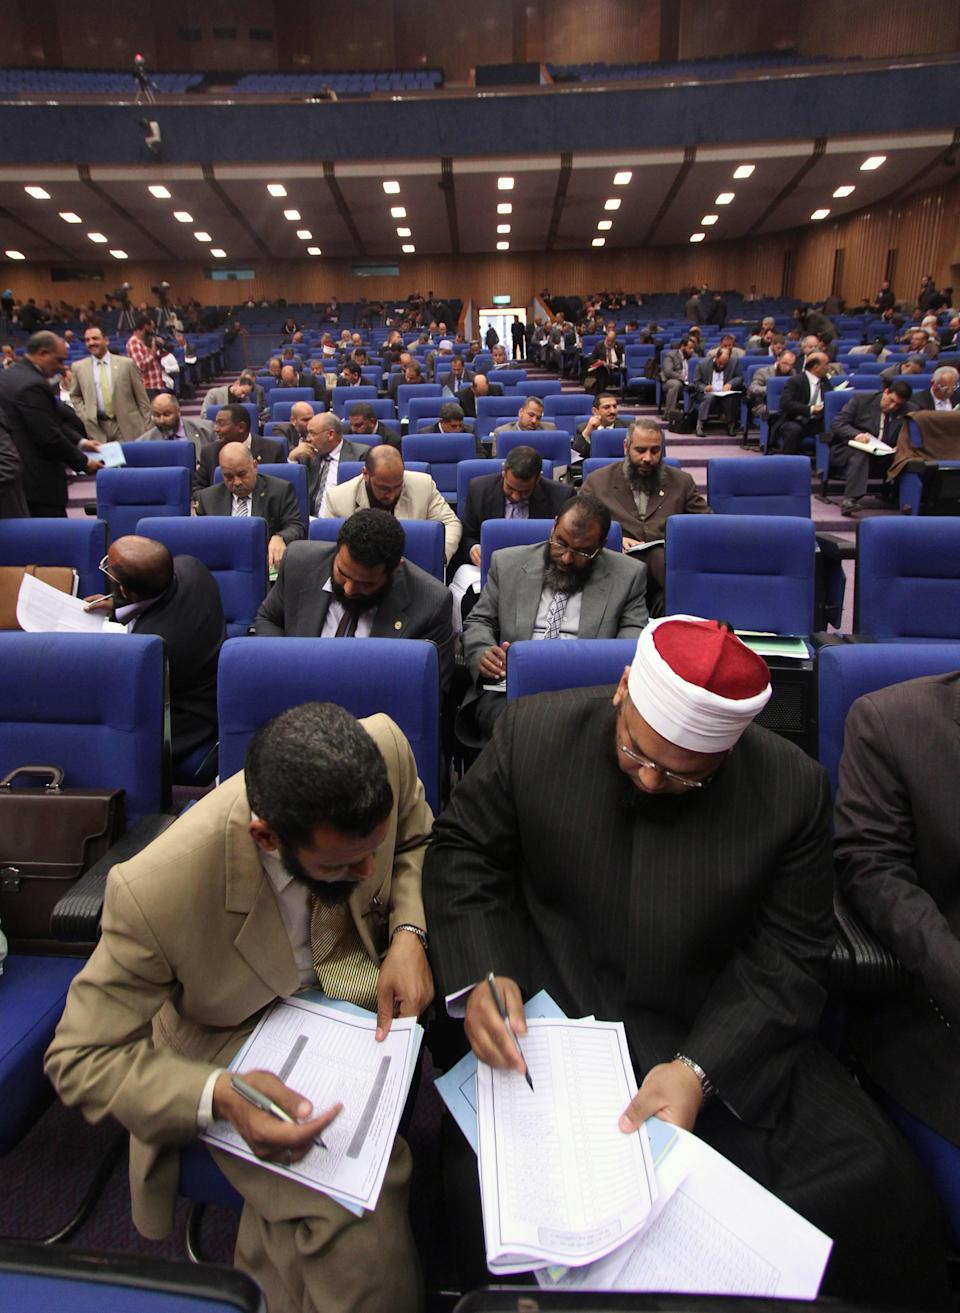 Egyptian lawmakers vote during a session to select a constitutional panel in Cairo, Egypt, Saturday, March 24, 2012. Egyptian parliamentarians on Saturday cast ballots to select a 100-member panel that will draft the country's new constitution, amid deep polarization between liberals and Islamists over the process. (AP Photo/Ahmed Gomaa)